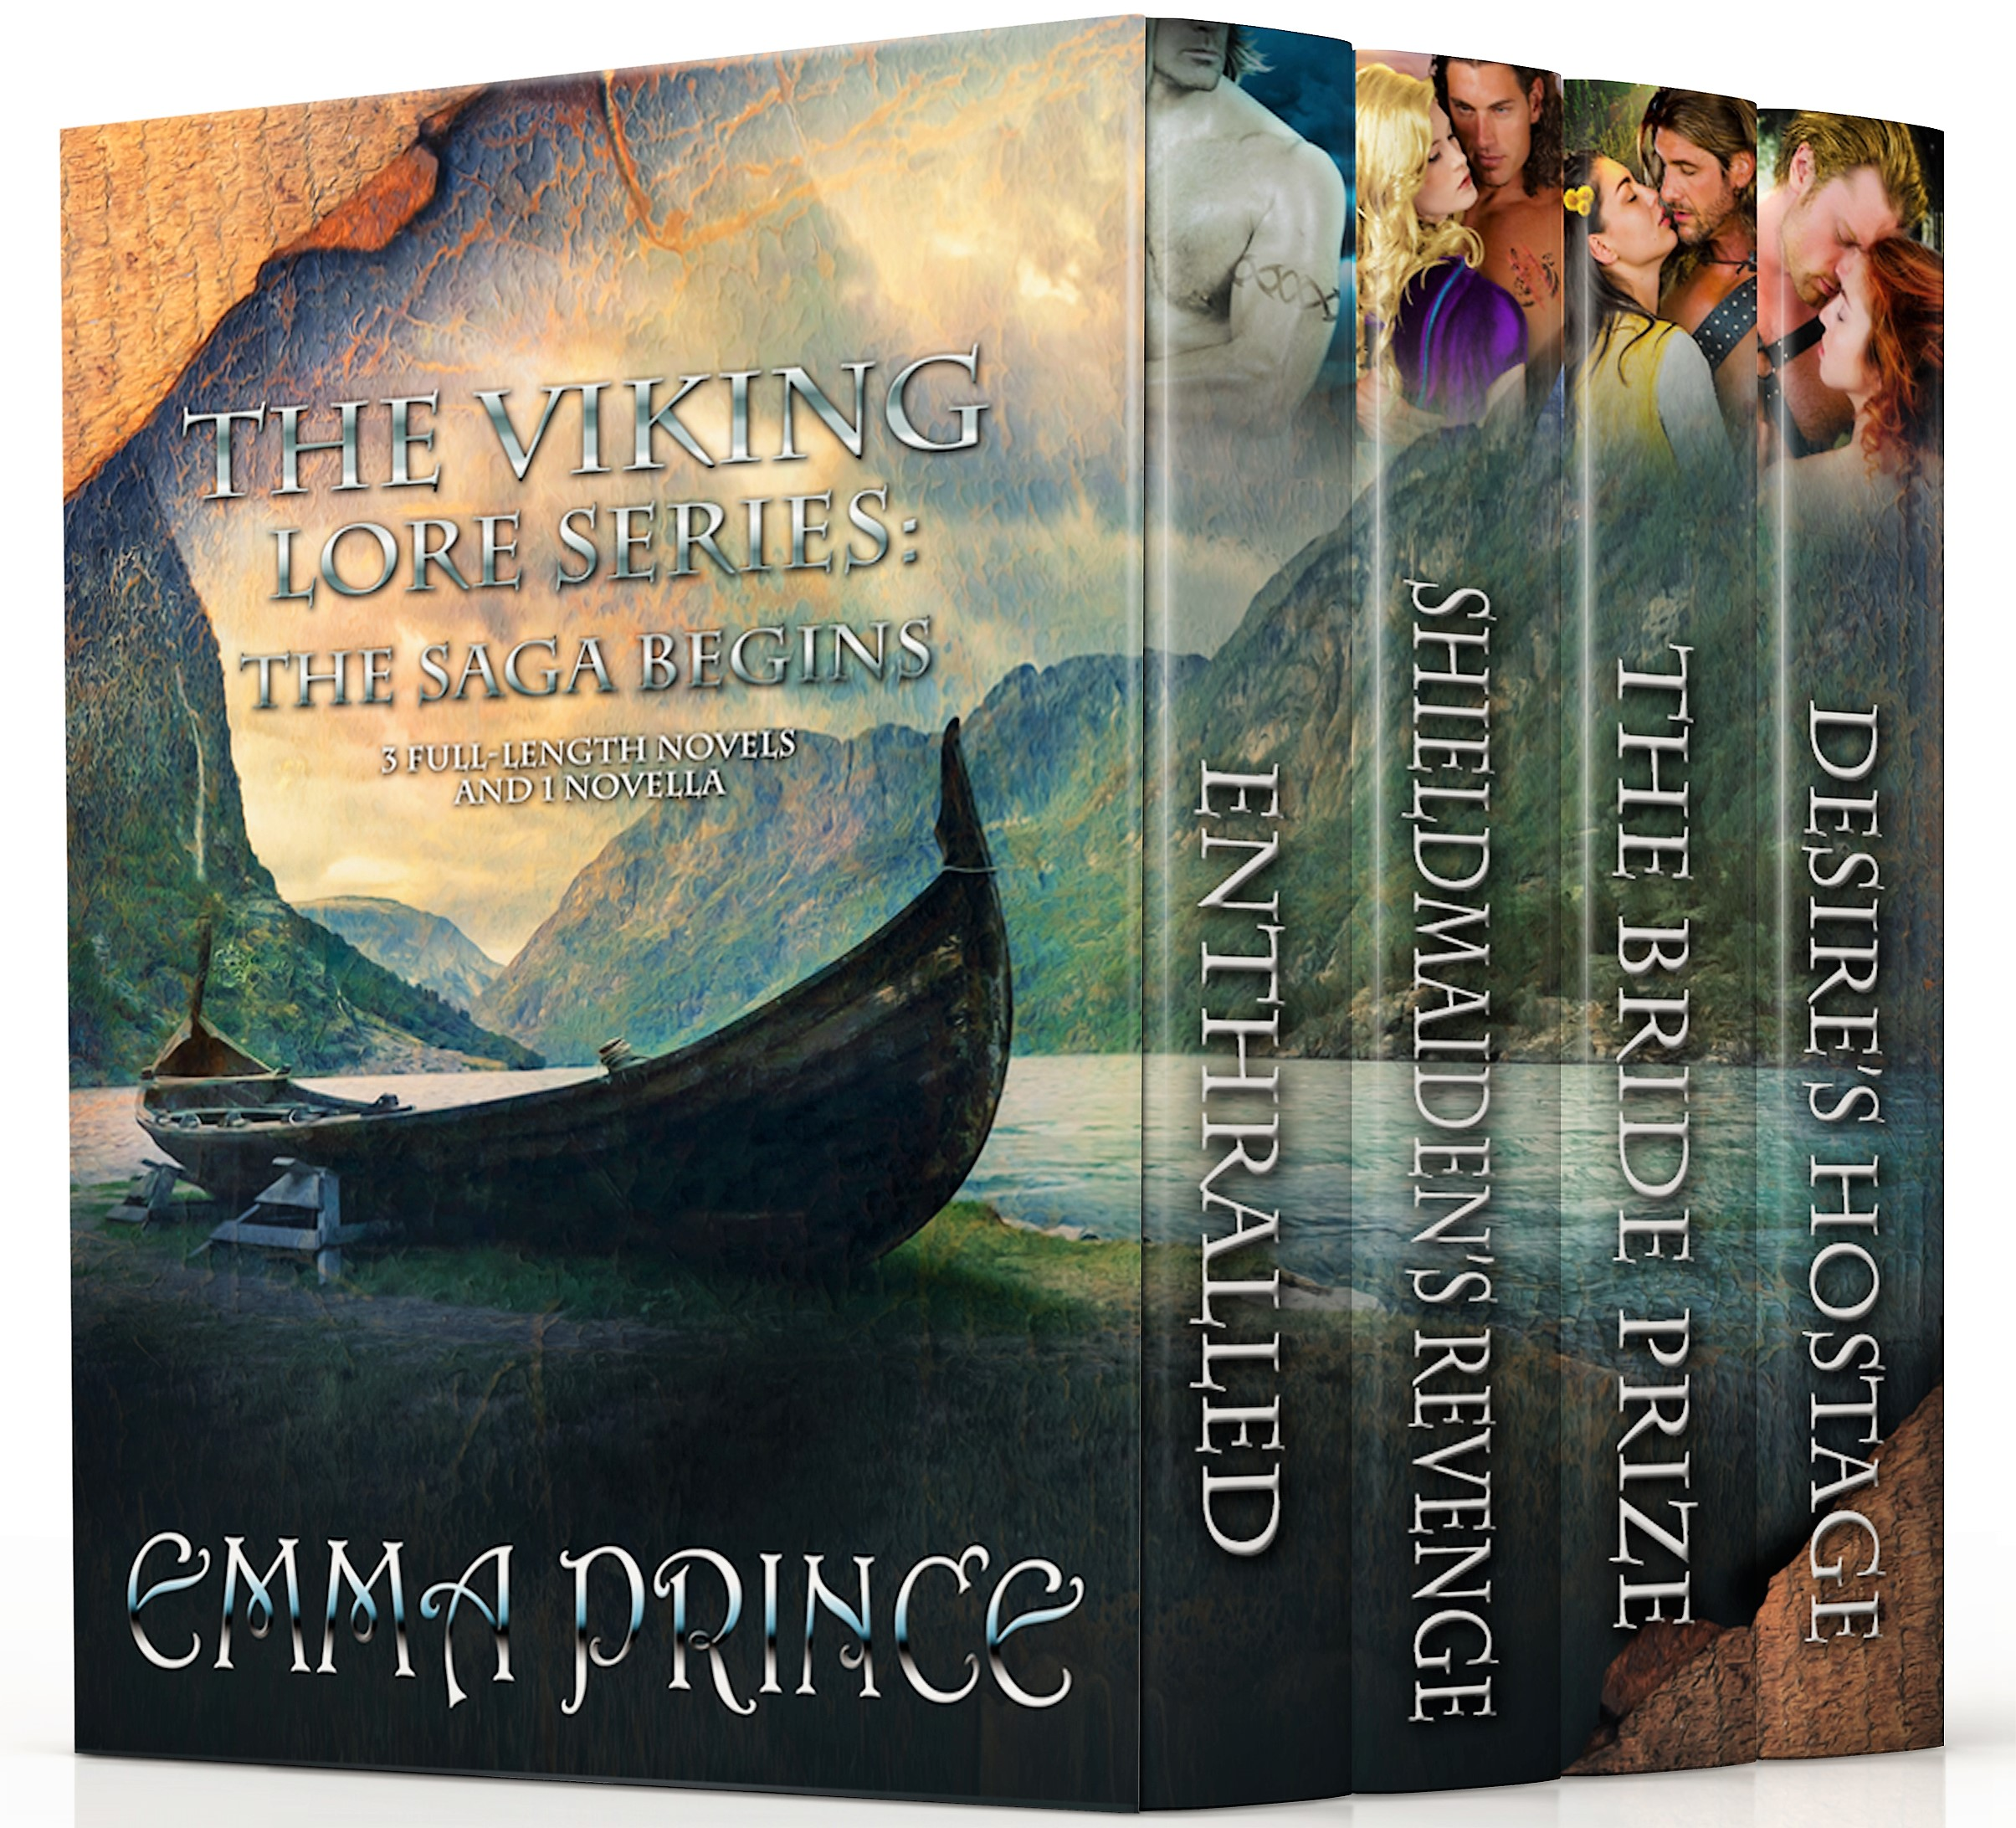 The Viking Lore Series (Books 1, 2, 2.5, 3)